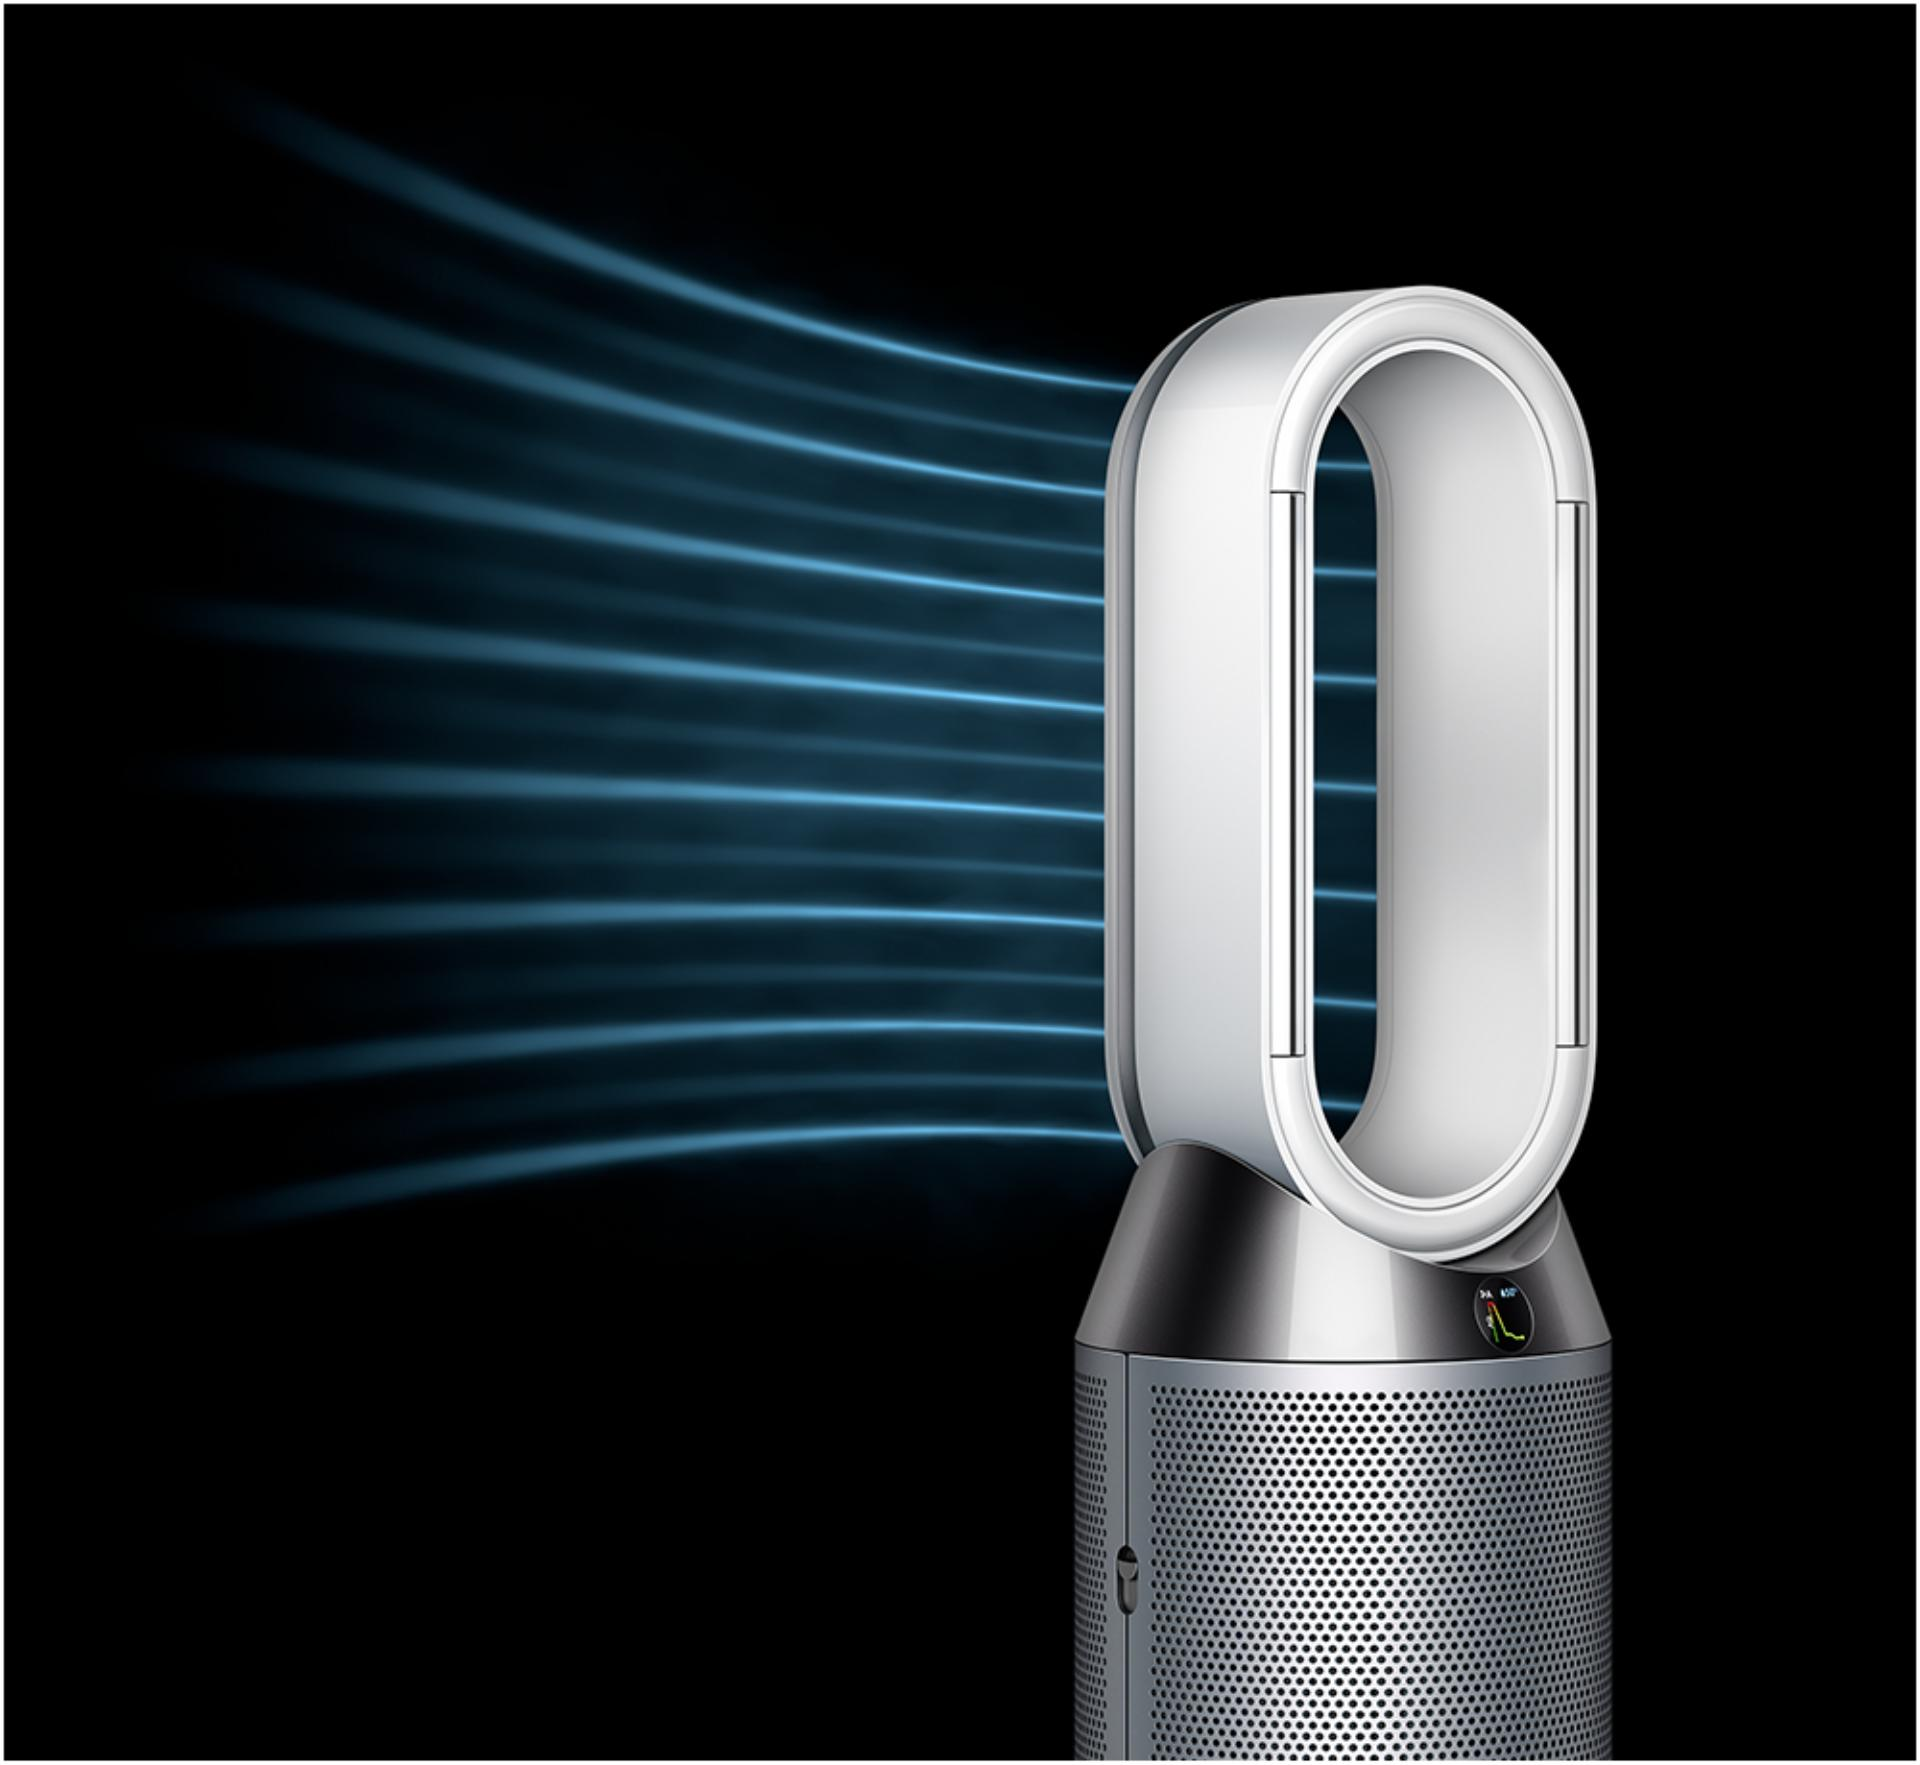 The Dyson purifier humidifier in Diffused mode